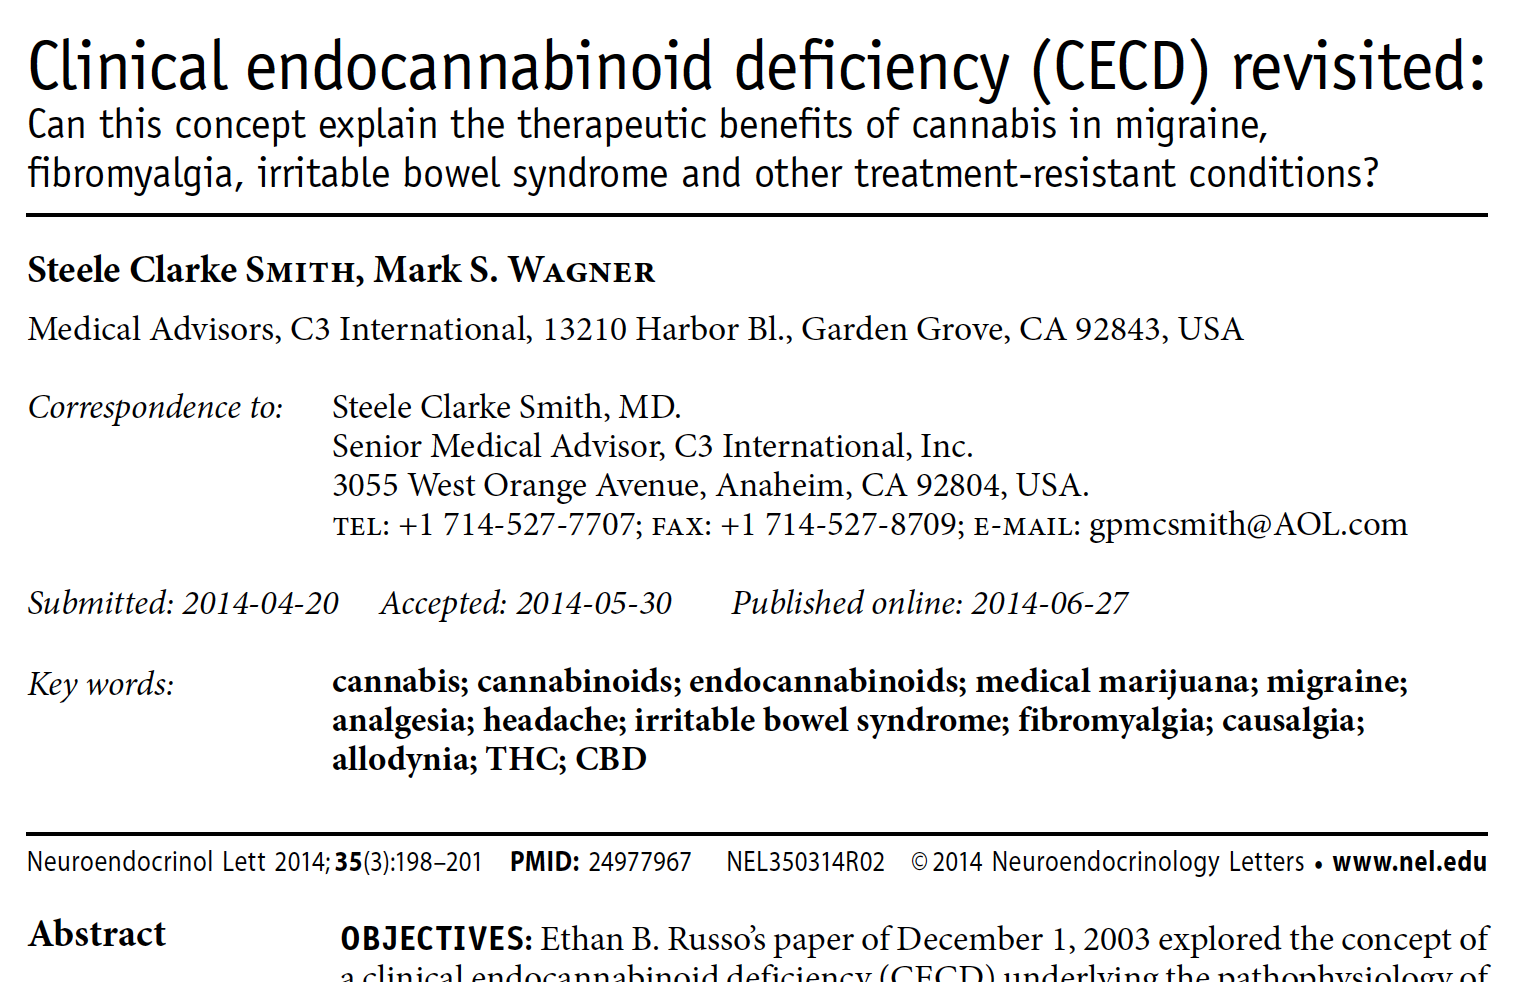 Clinical endocannabinoid deficiency (CECD) revisited: